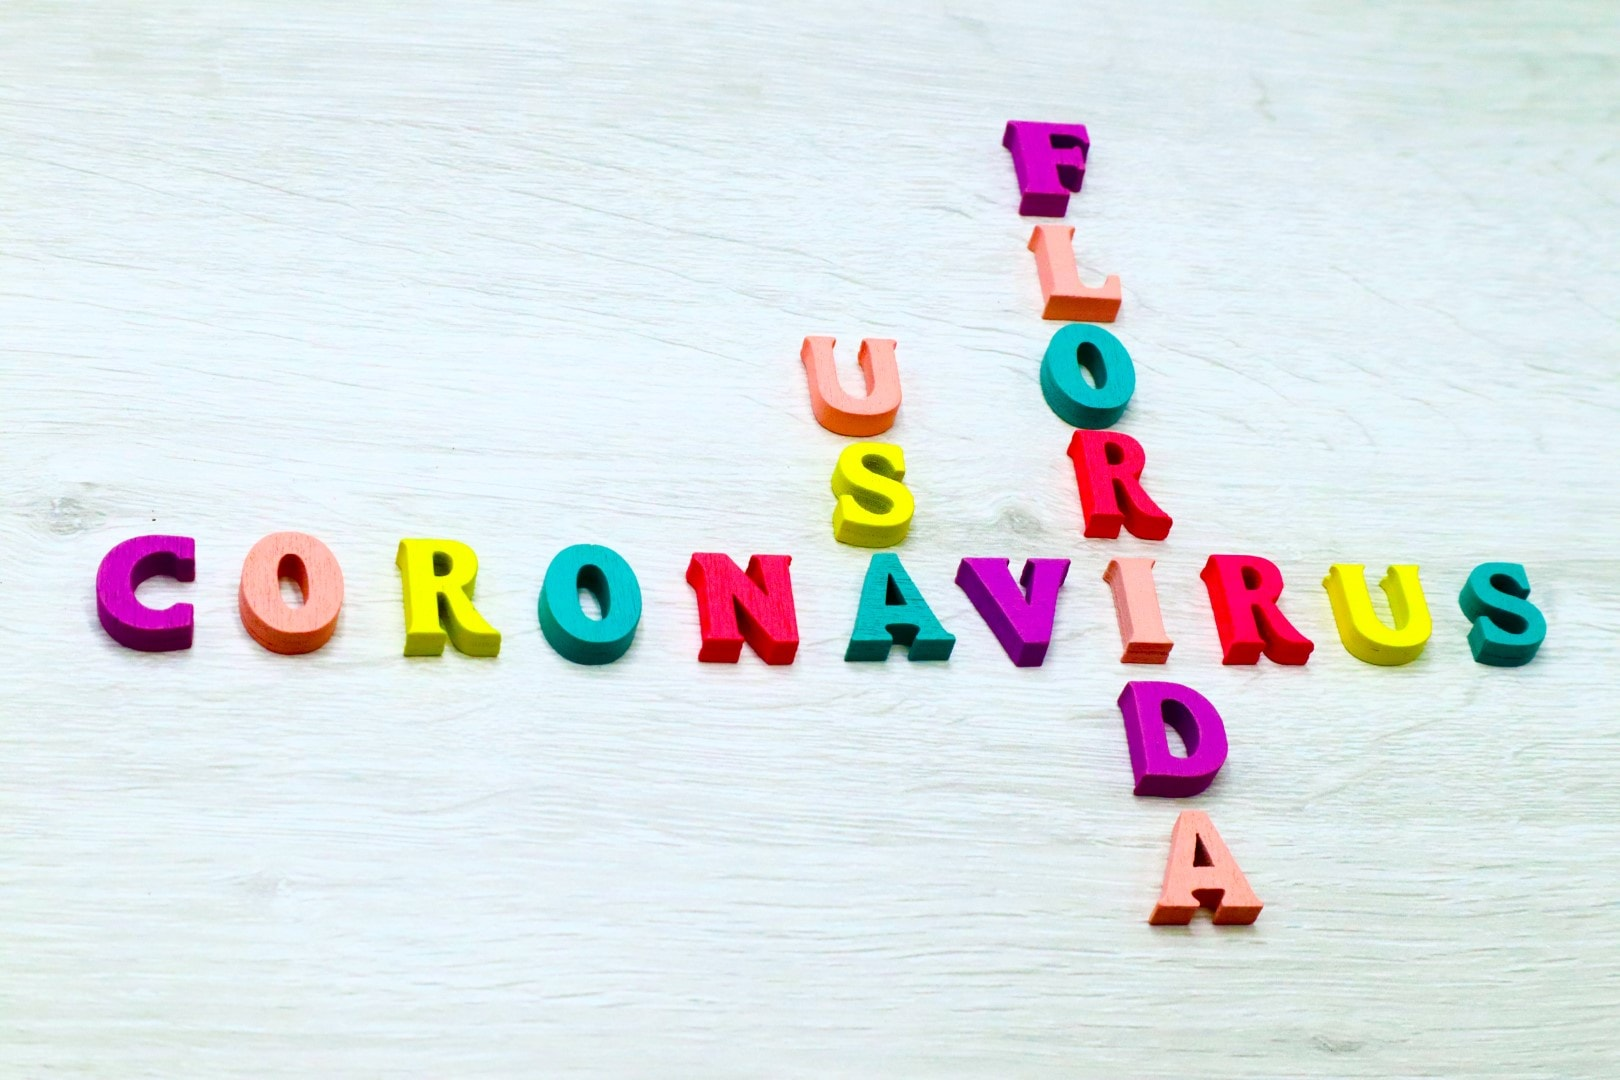 Coronavirus COVID-19 in FLORIDA, USA - Rainbow colored wood letters on grey wooden background